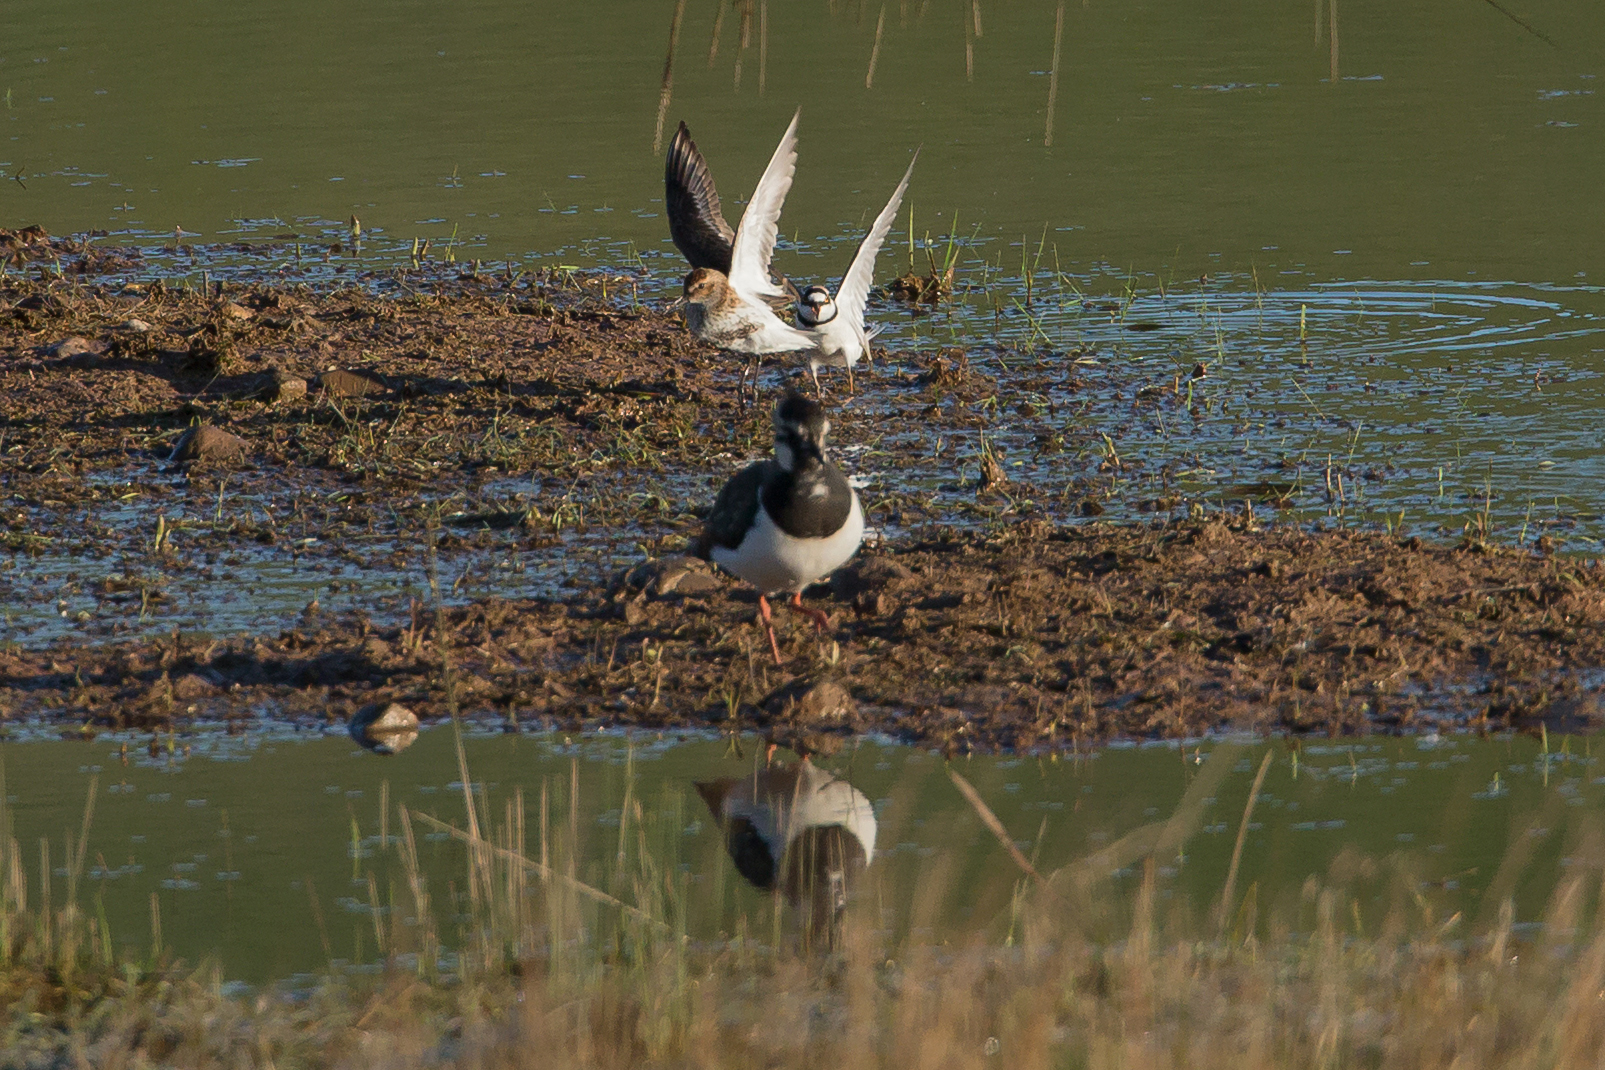 Alston shorebirds. 'Get off my land' said the Little Ringed Plover to the Dunlin.